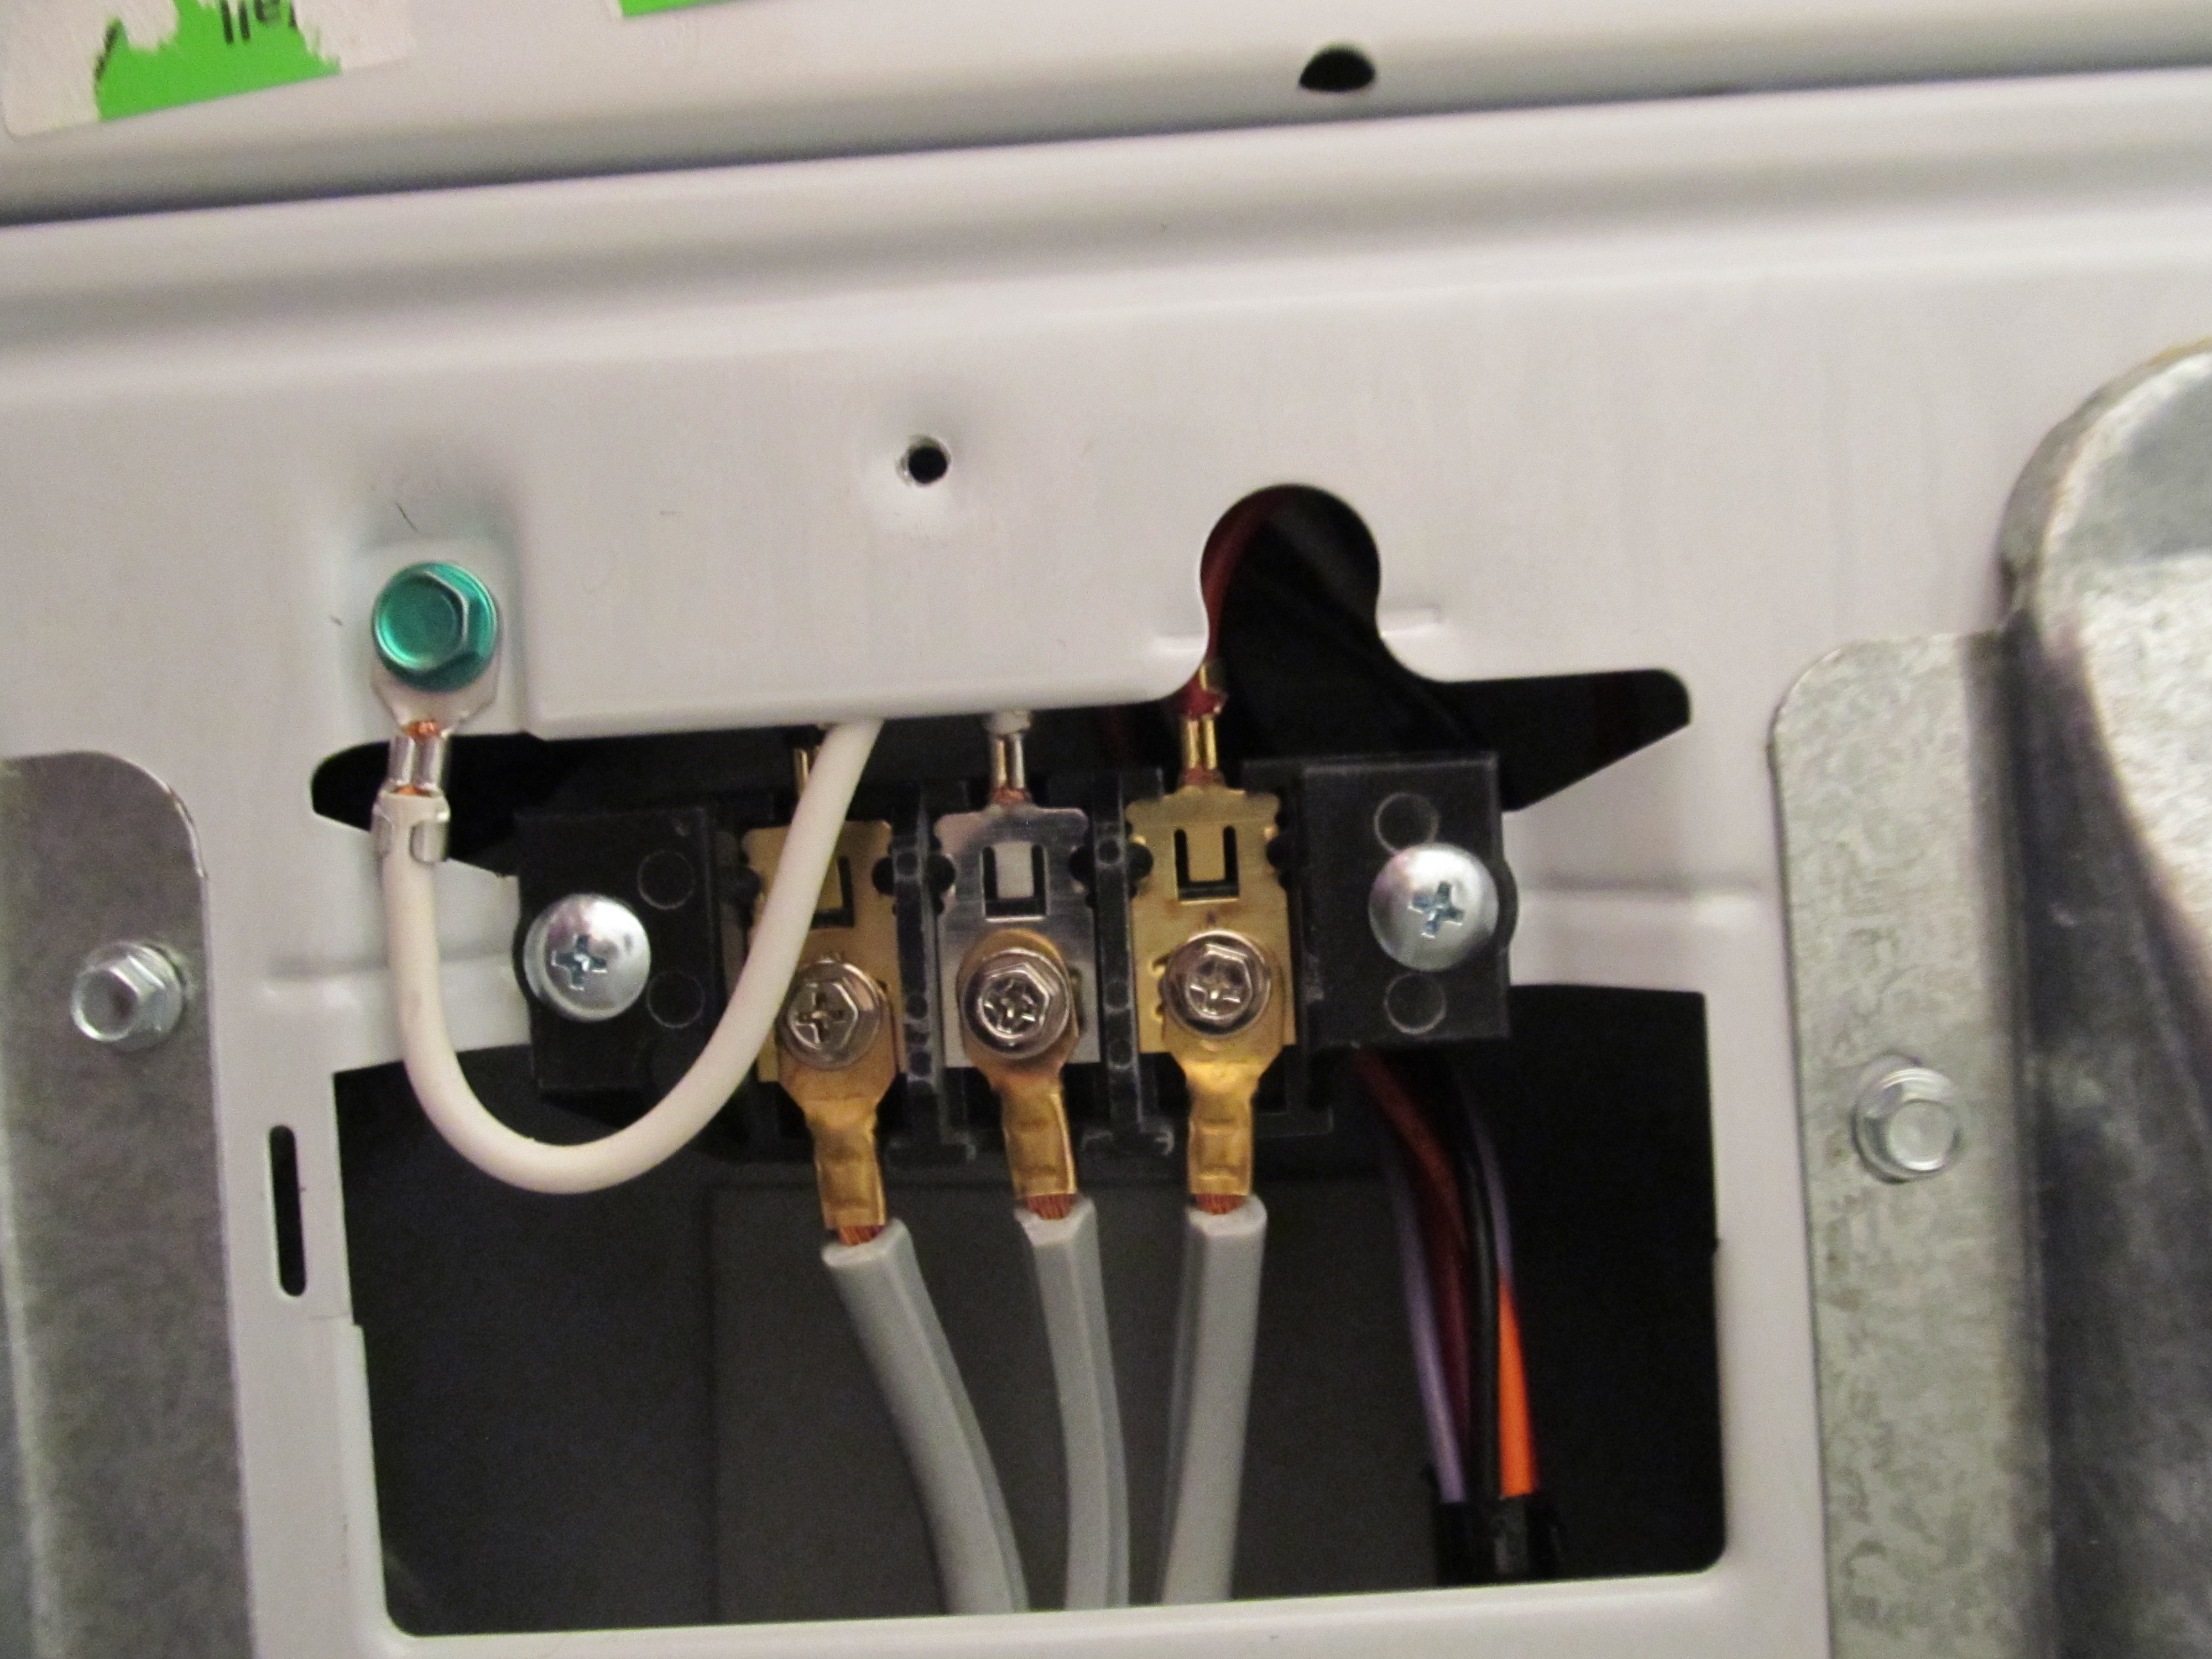 Dryer Wiring Diagram Wiring 4 Wire Cord To 3 Prong Dryer 4 Wire Dryer